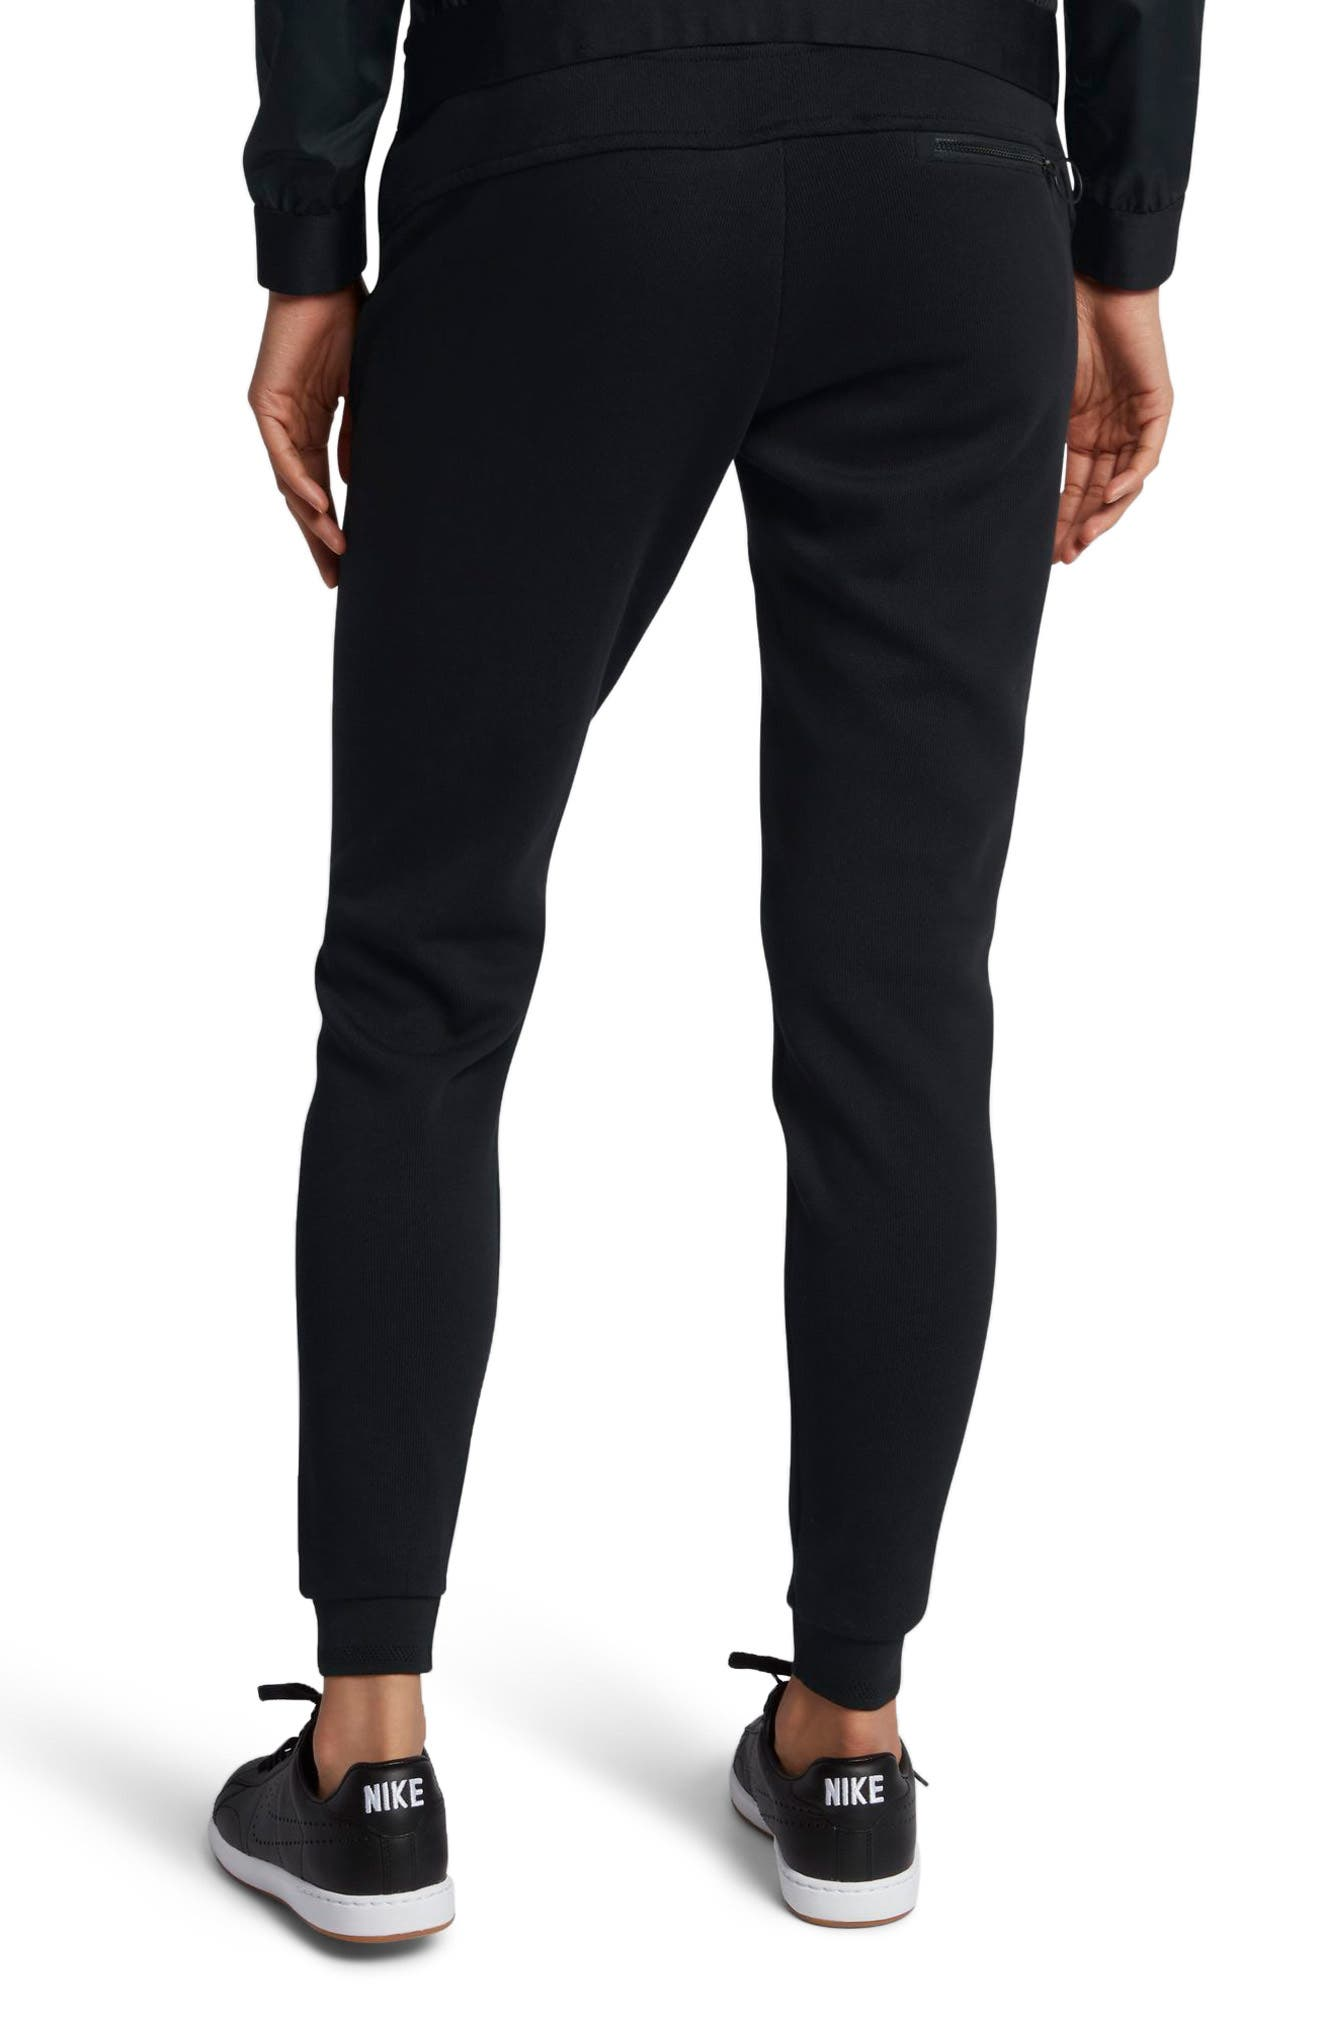 Women's Court Tennis Pants,                             Alternate thumbnail 2, color,                             010